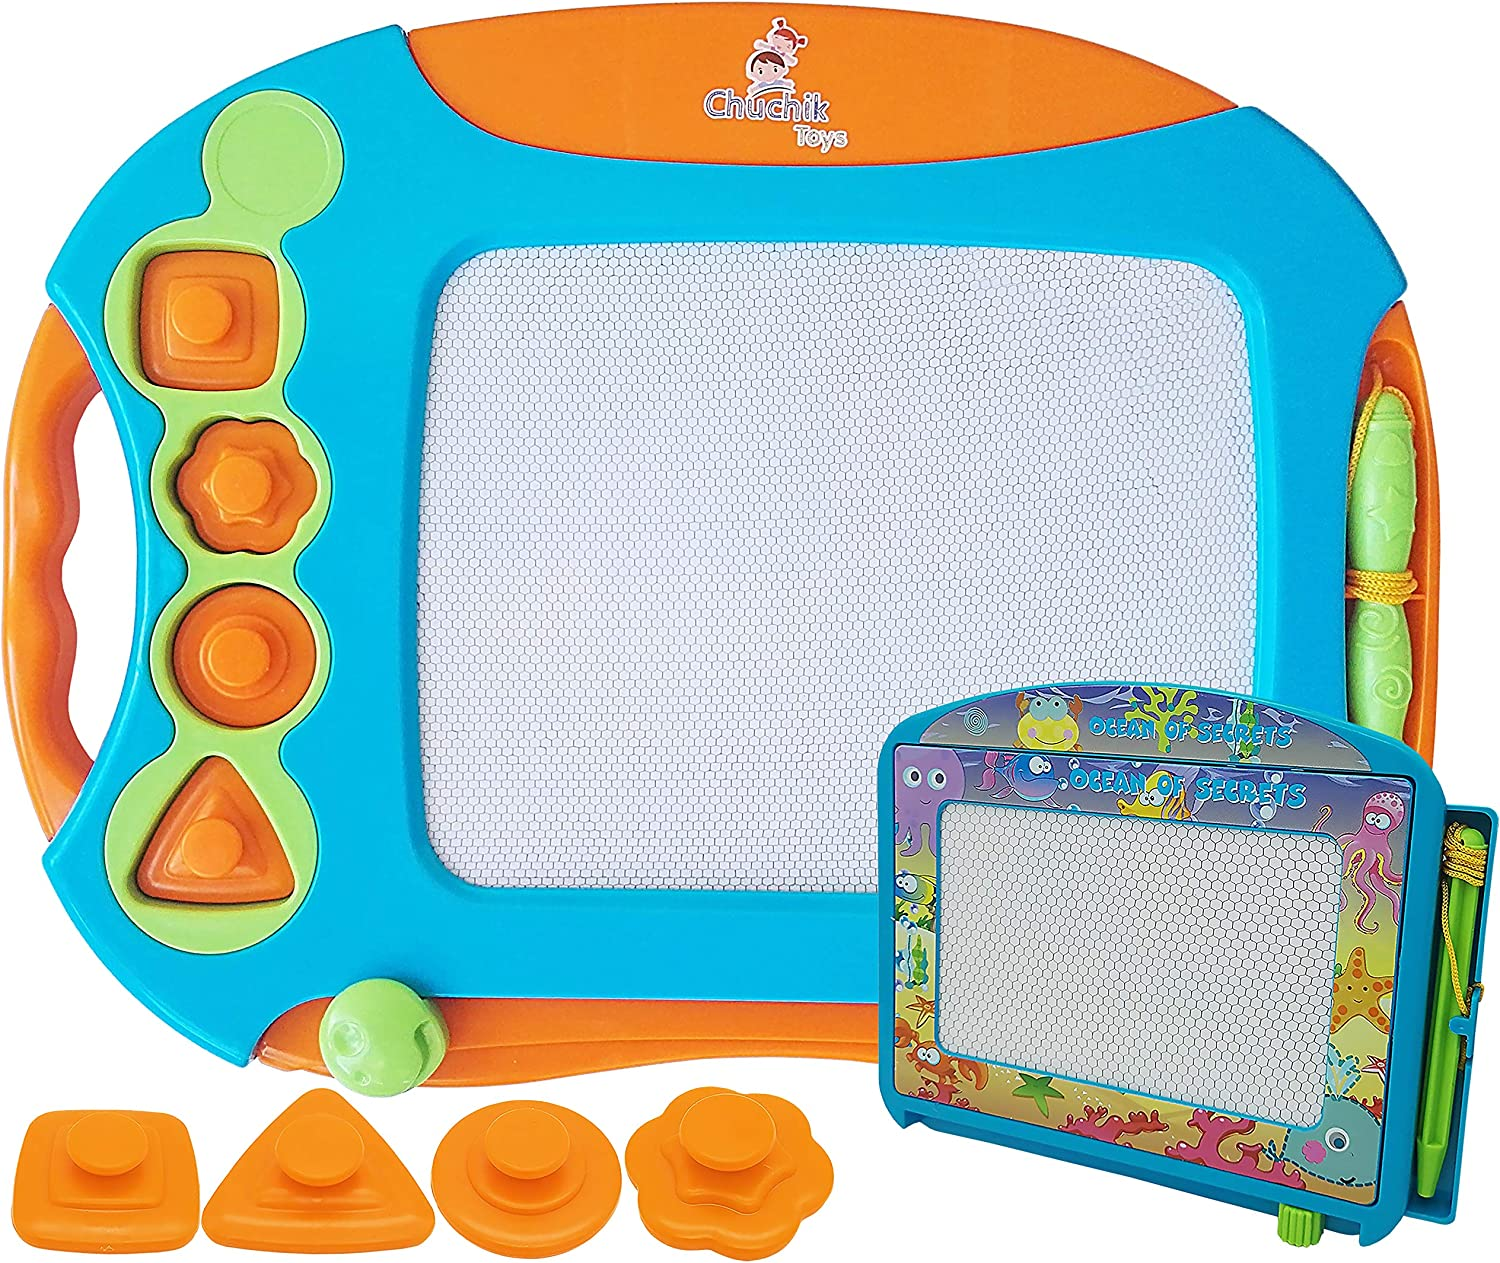 Top 10 Best Magnetic Doodle Drawing Board For Kids (2020 Reviews & Buying Guide) 7